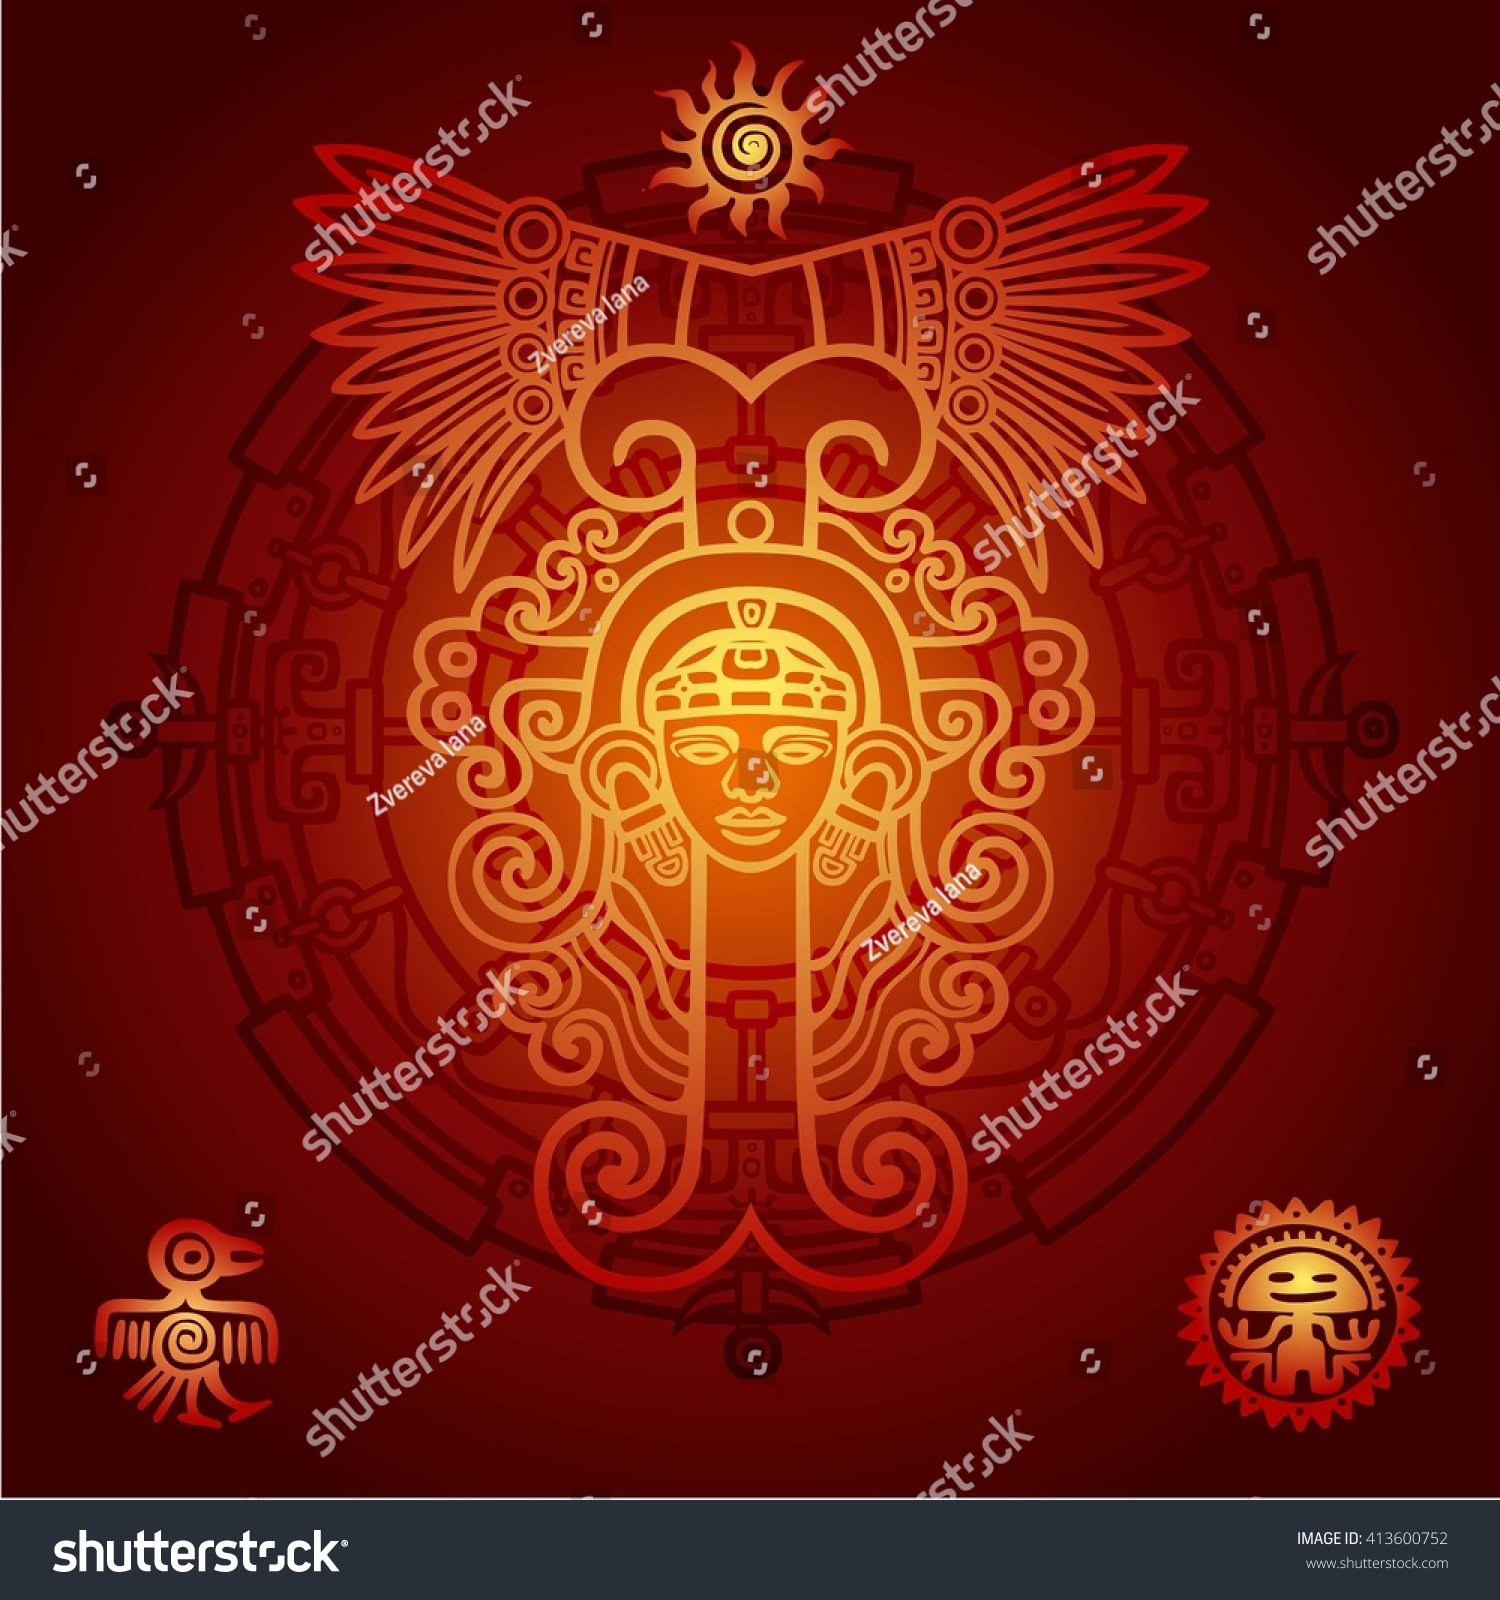 Linear Drawing Decorative Image Of An Ancient Indian Deity